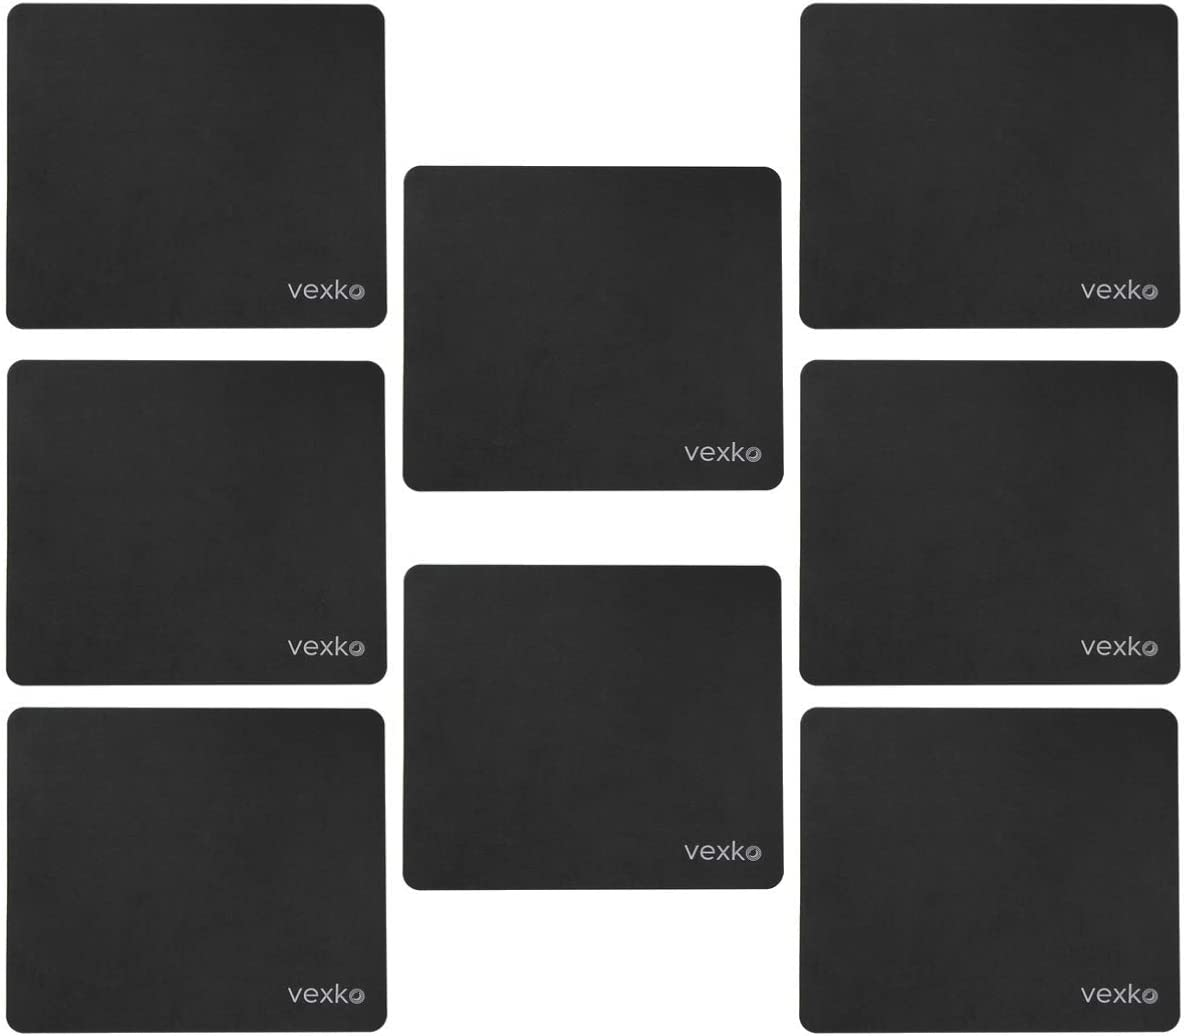 Non-Slip Base Computer Keyboard Mousepad Mouse Mat Vexko Gaming Mouse Pad Water-Resistant 12.5 X 11 Inch Perfect for Gaming 8 Pack